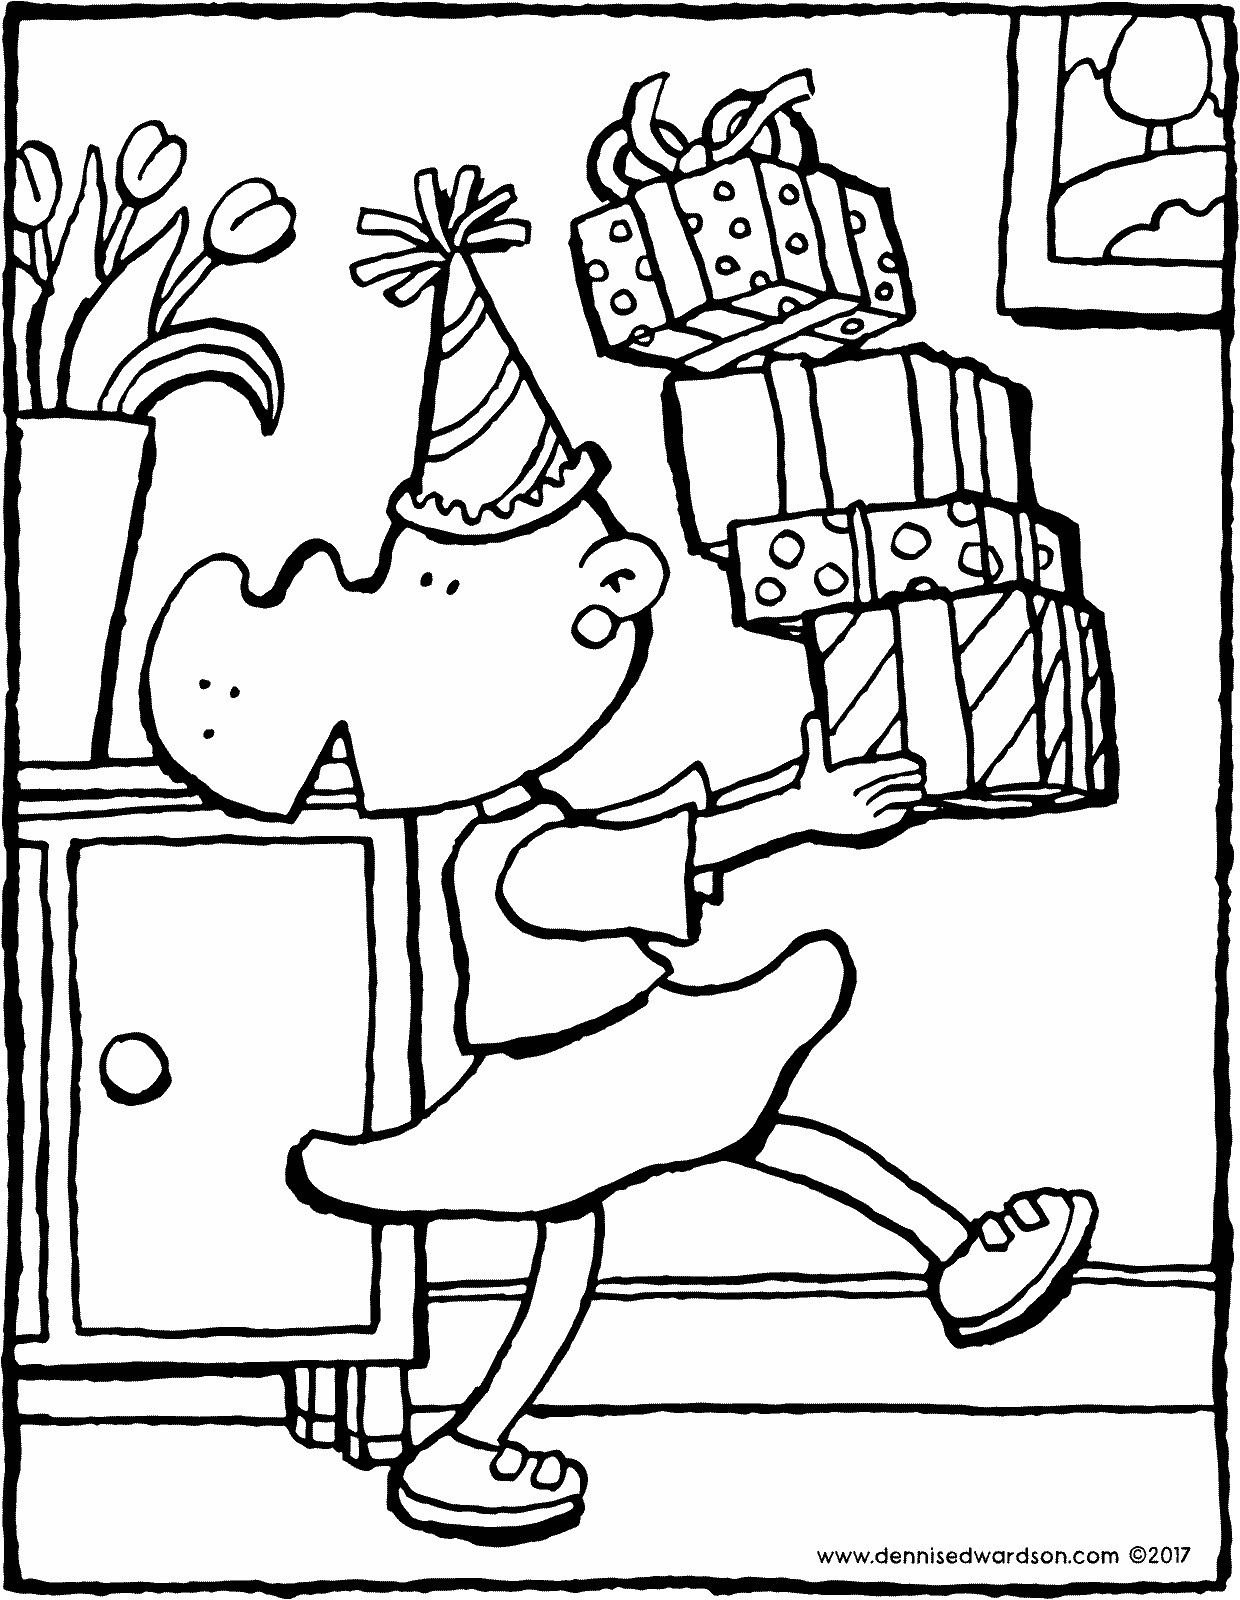 A Pile Of Presents It S Someone S Birthday Today Hip Hip Hurrah There Are Presents For The Birthday Coloring Pages Beautiful Birthday Cards Coloring Pages